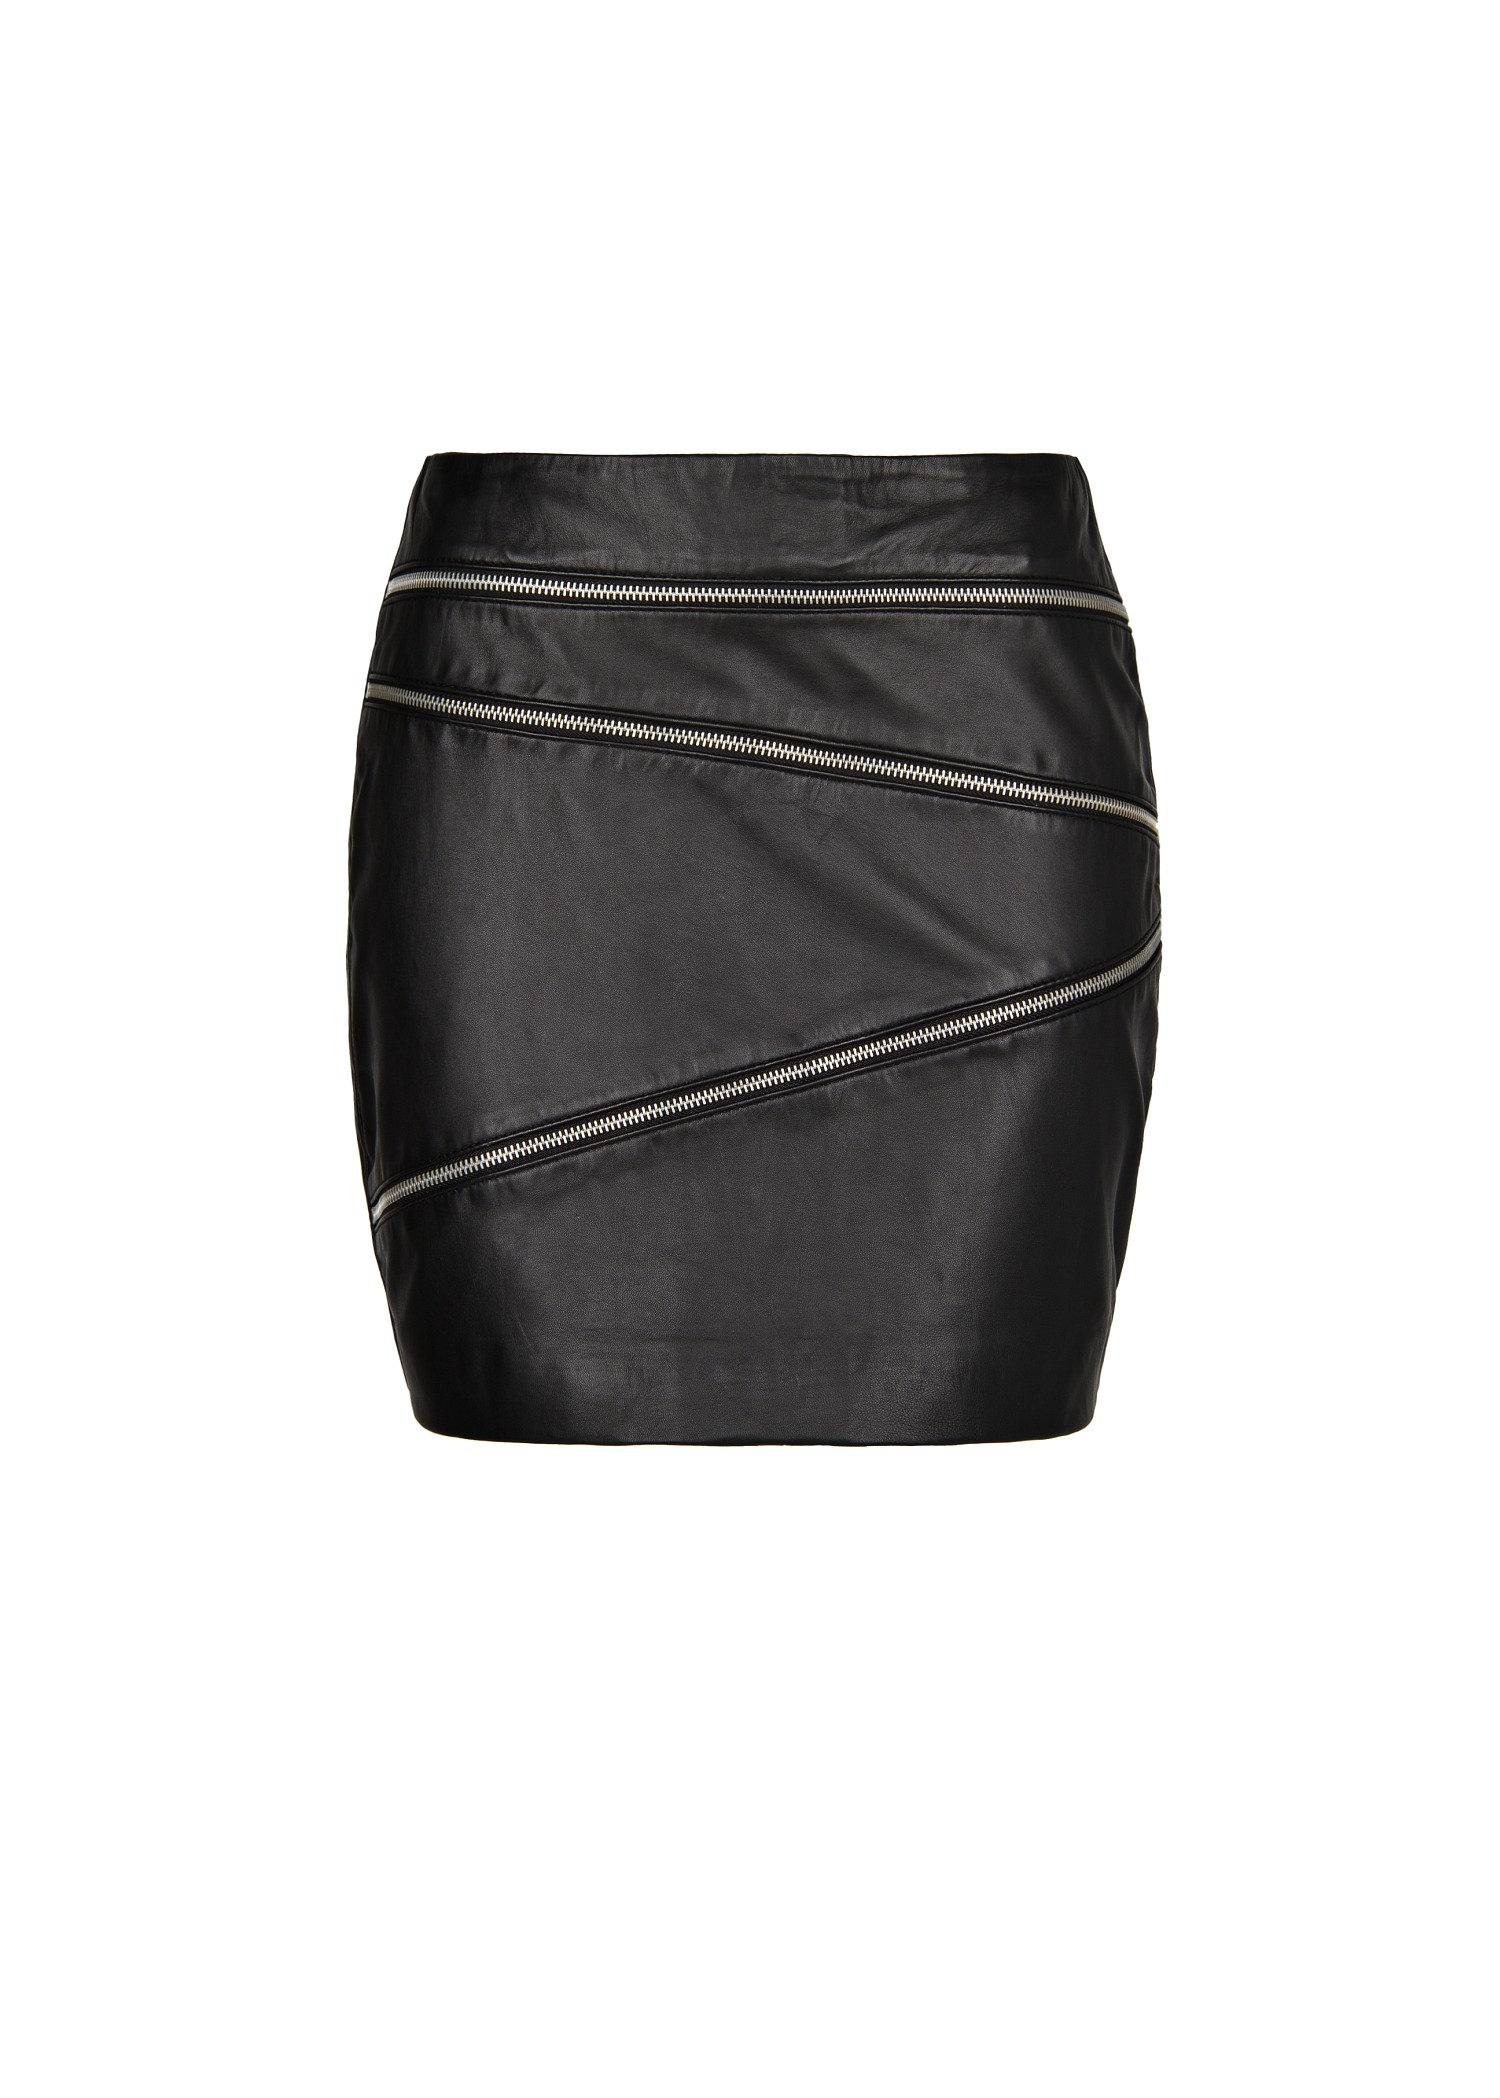 Mango Zip Leather Skirt in Black | Lyst